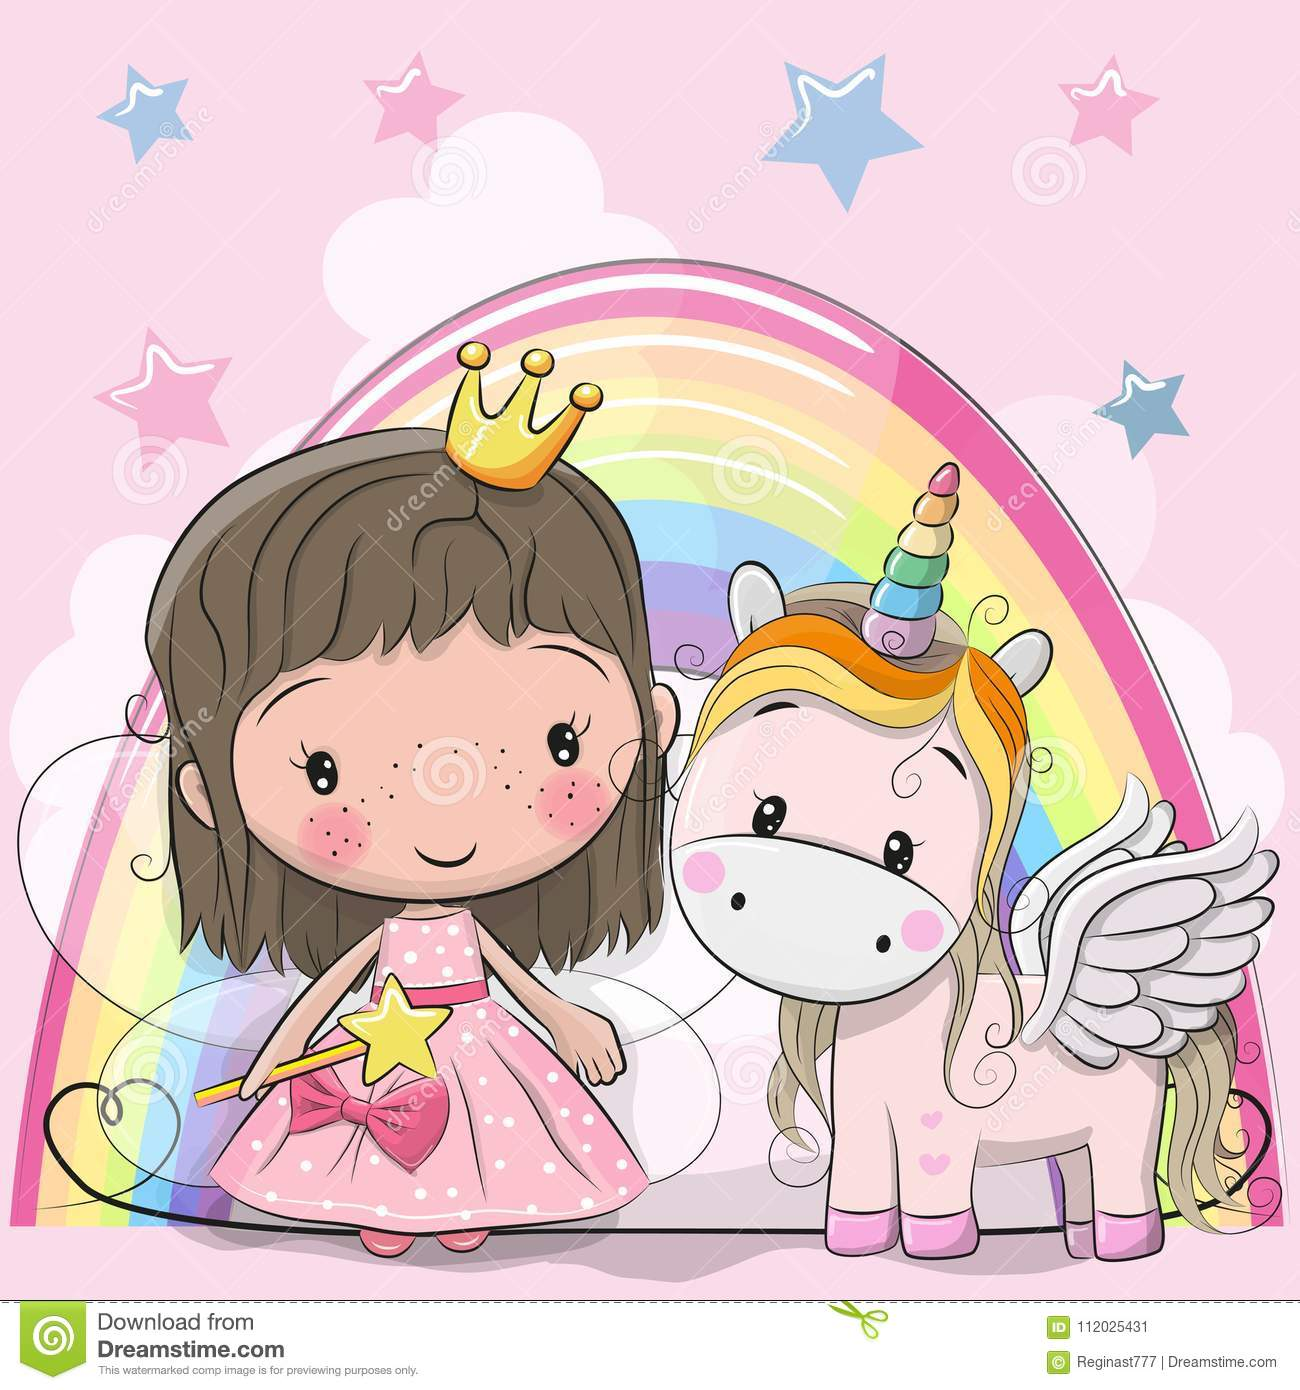 Greeting Card with fairy tale Princess and Unicorn